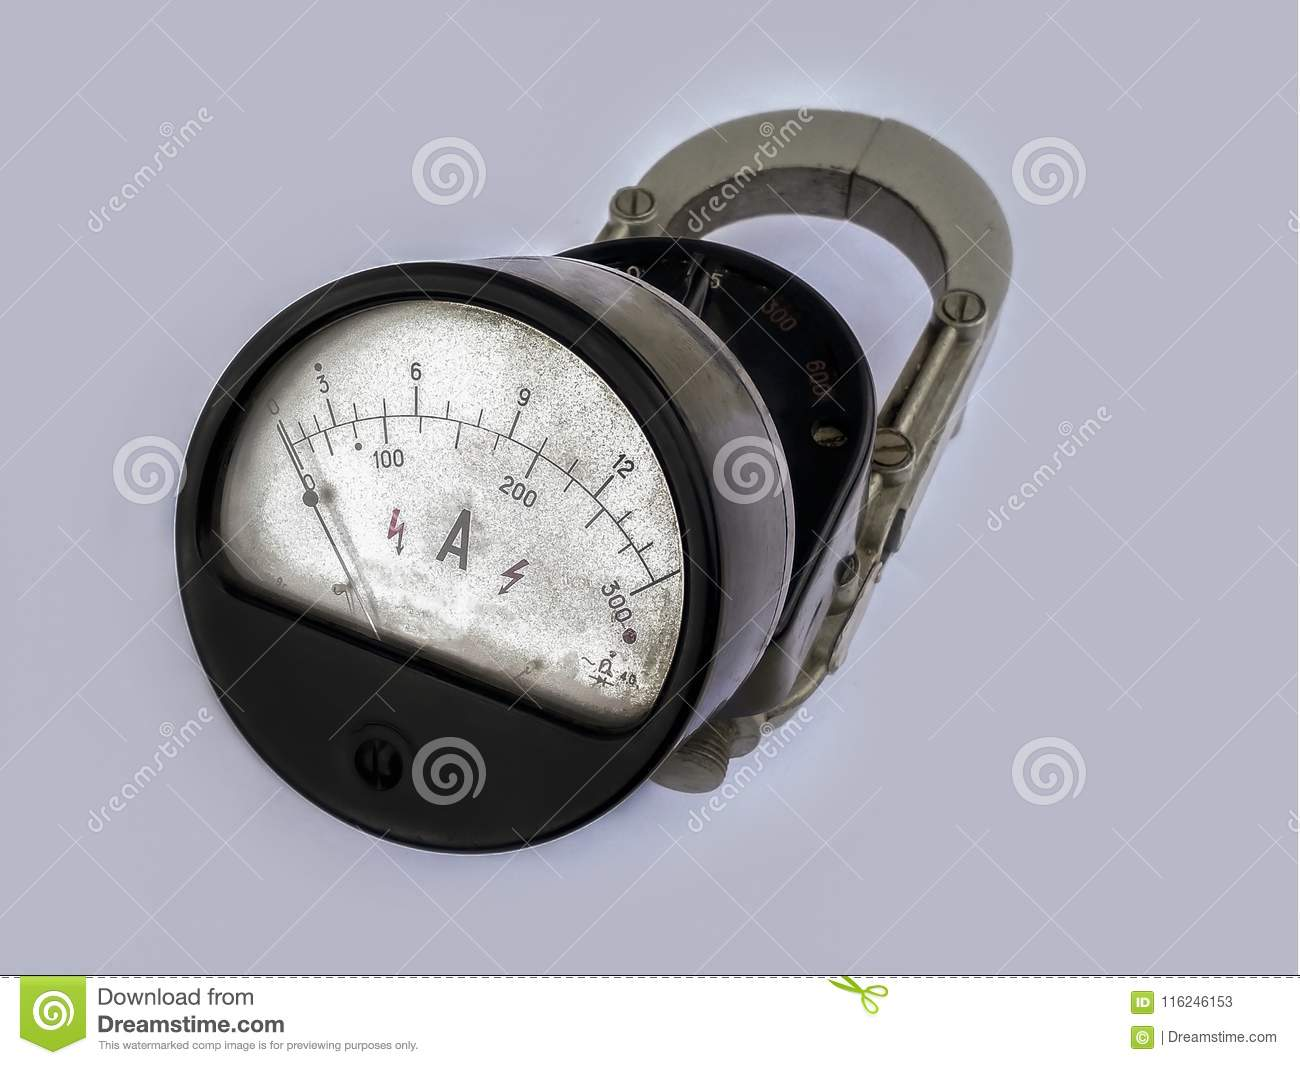 Old device, ammeter Soviet times